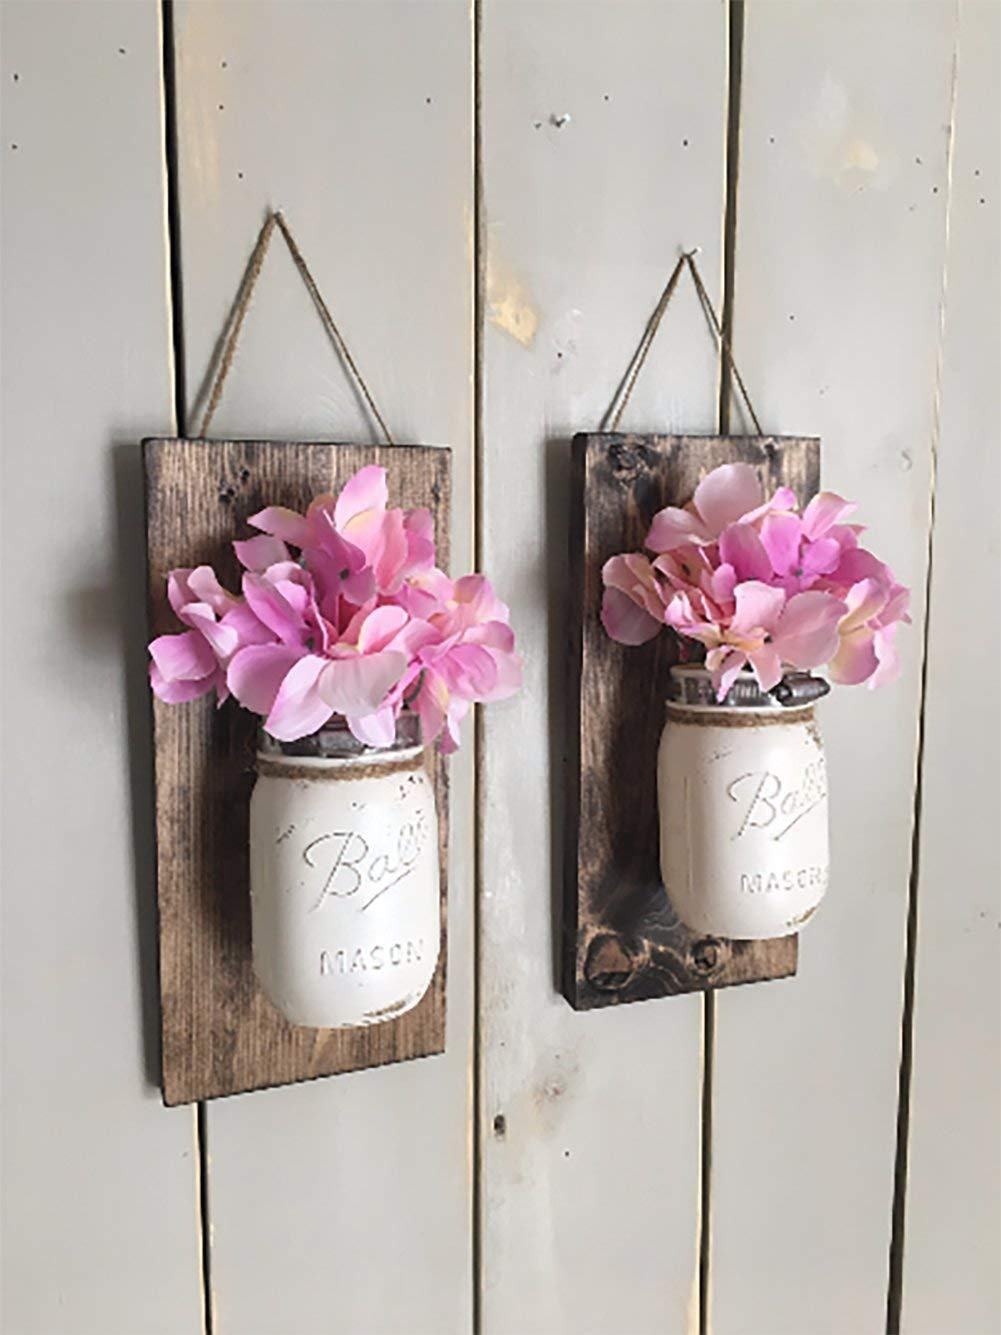 Floral wall sconce, Individual mason jar sconce, flower vase mason jar, rustic decor, painted mason jar, floral wall sconce